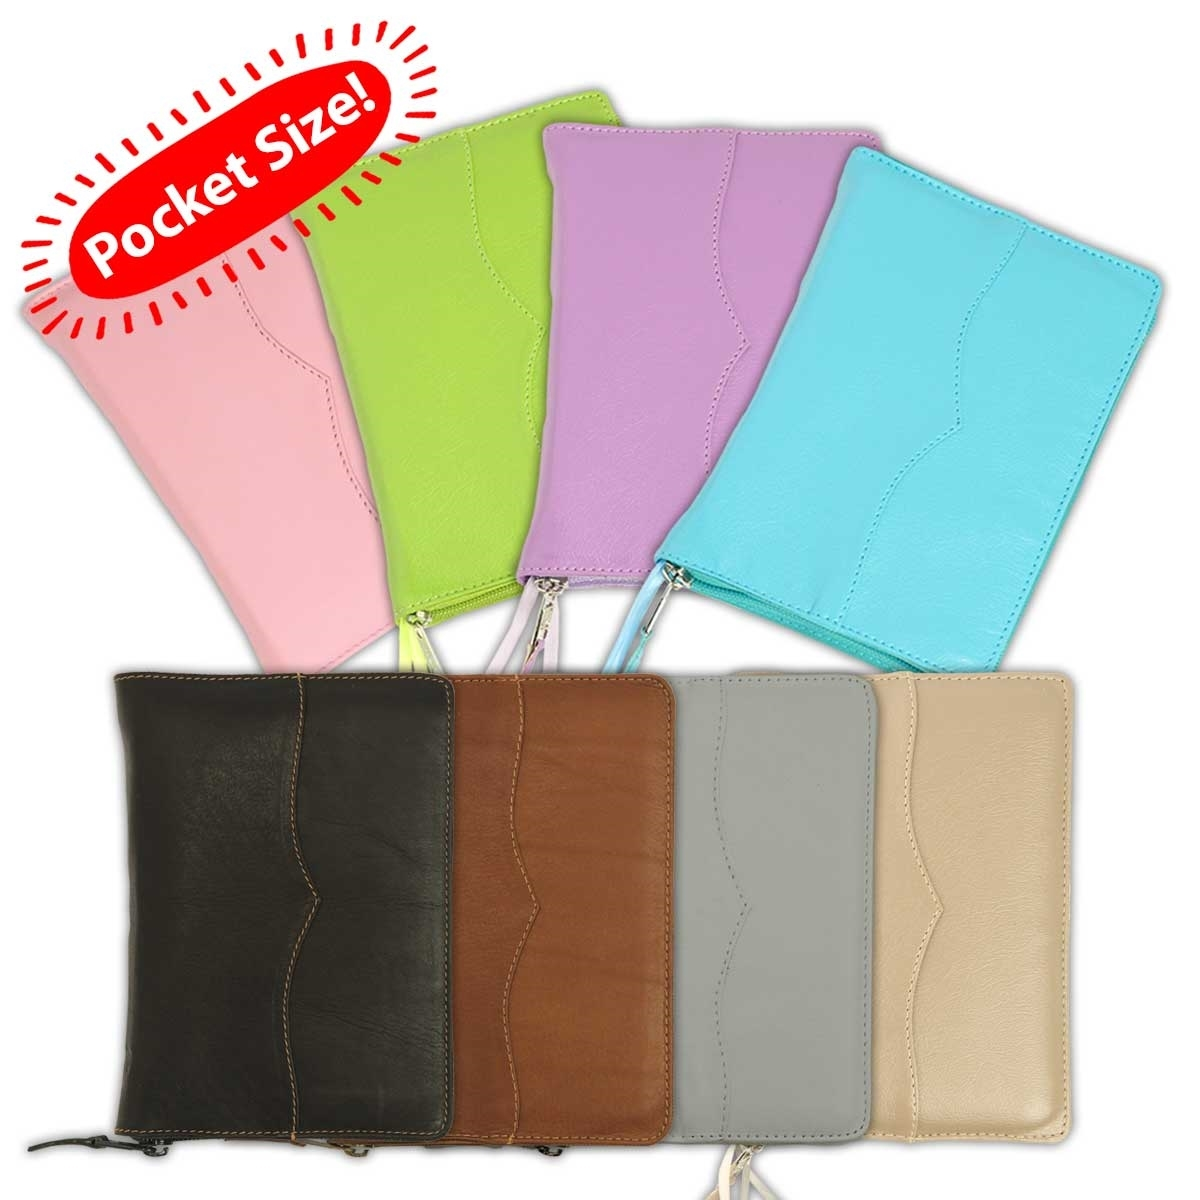 Bible pocket cover